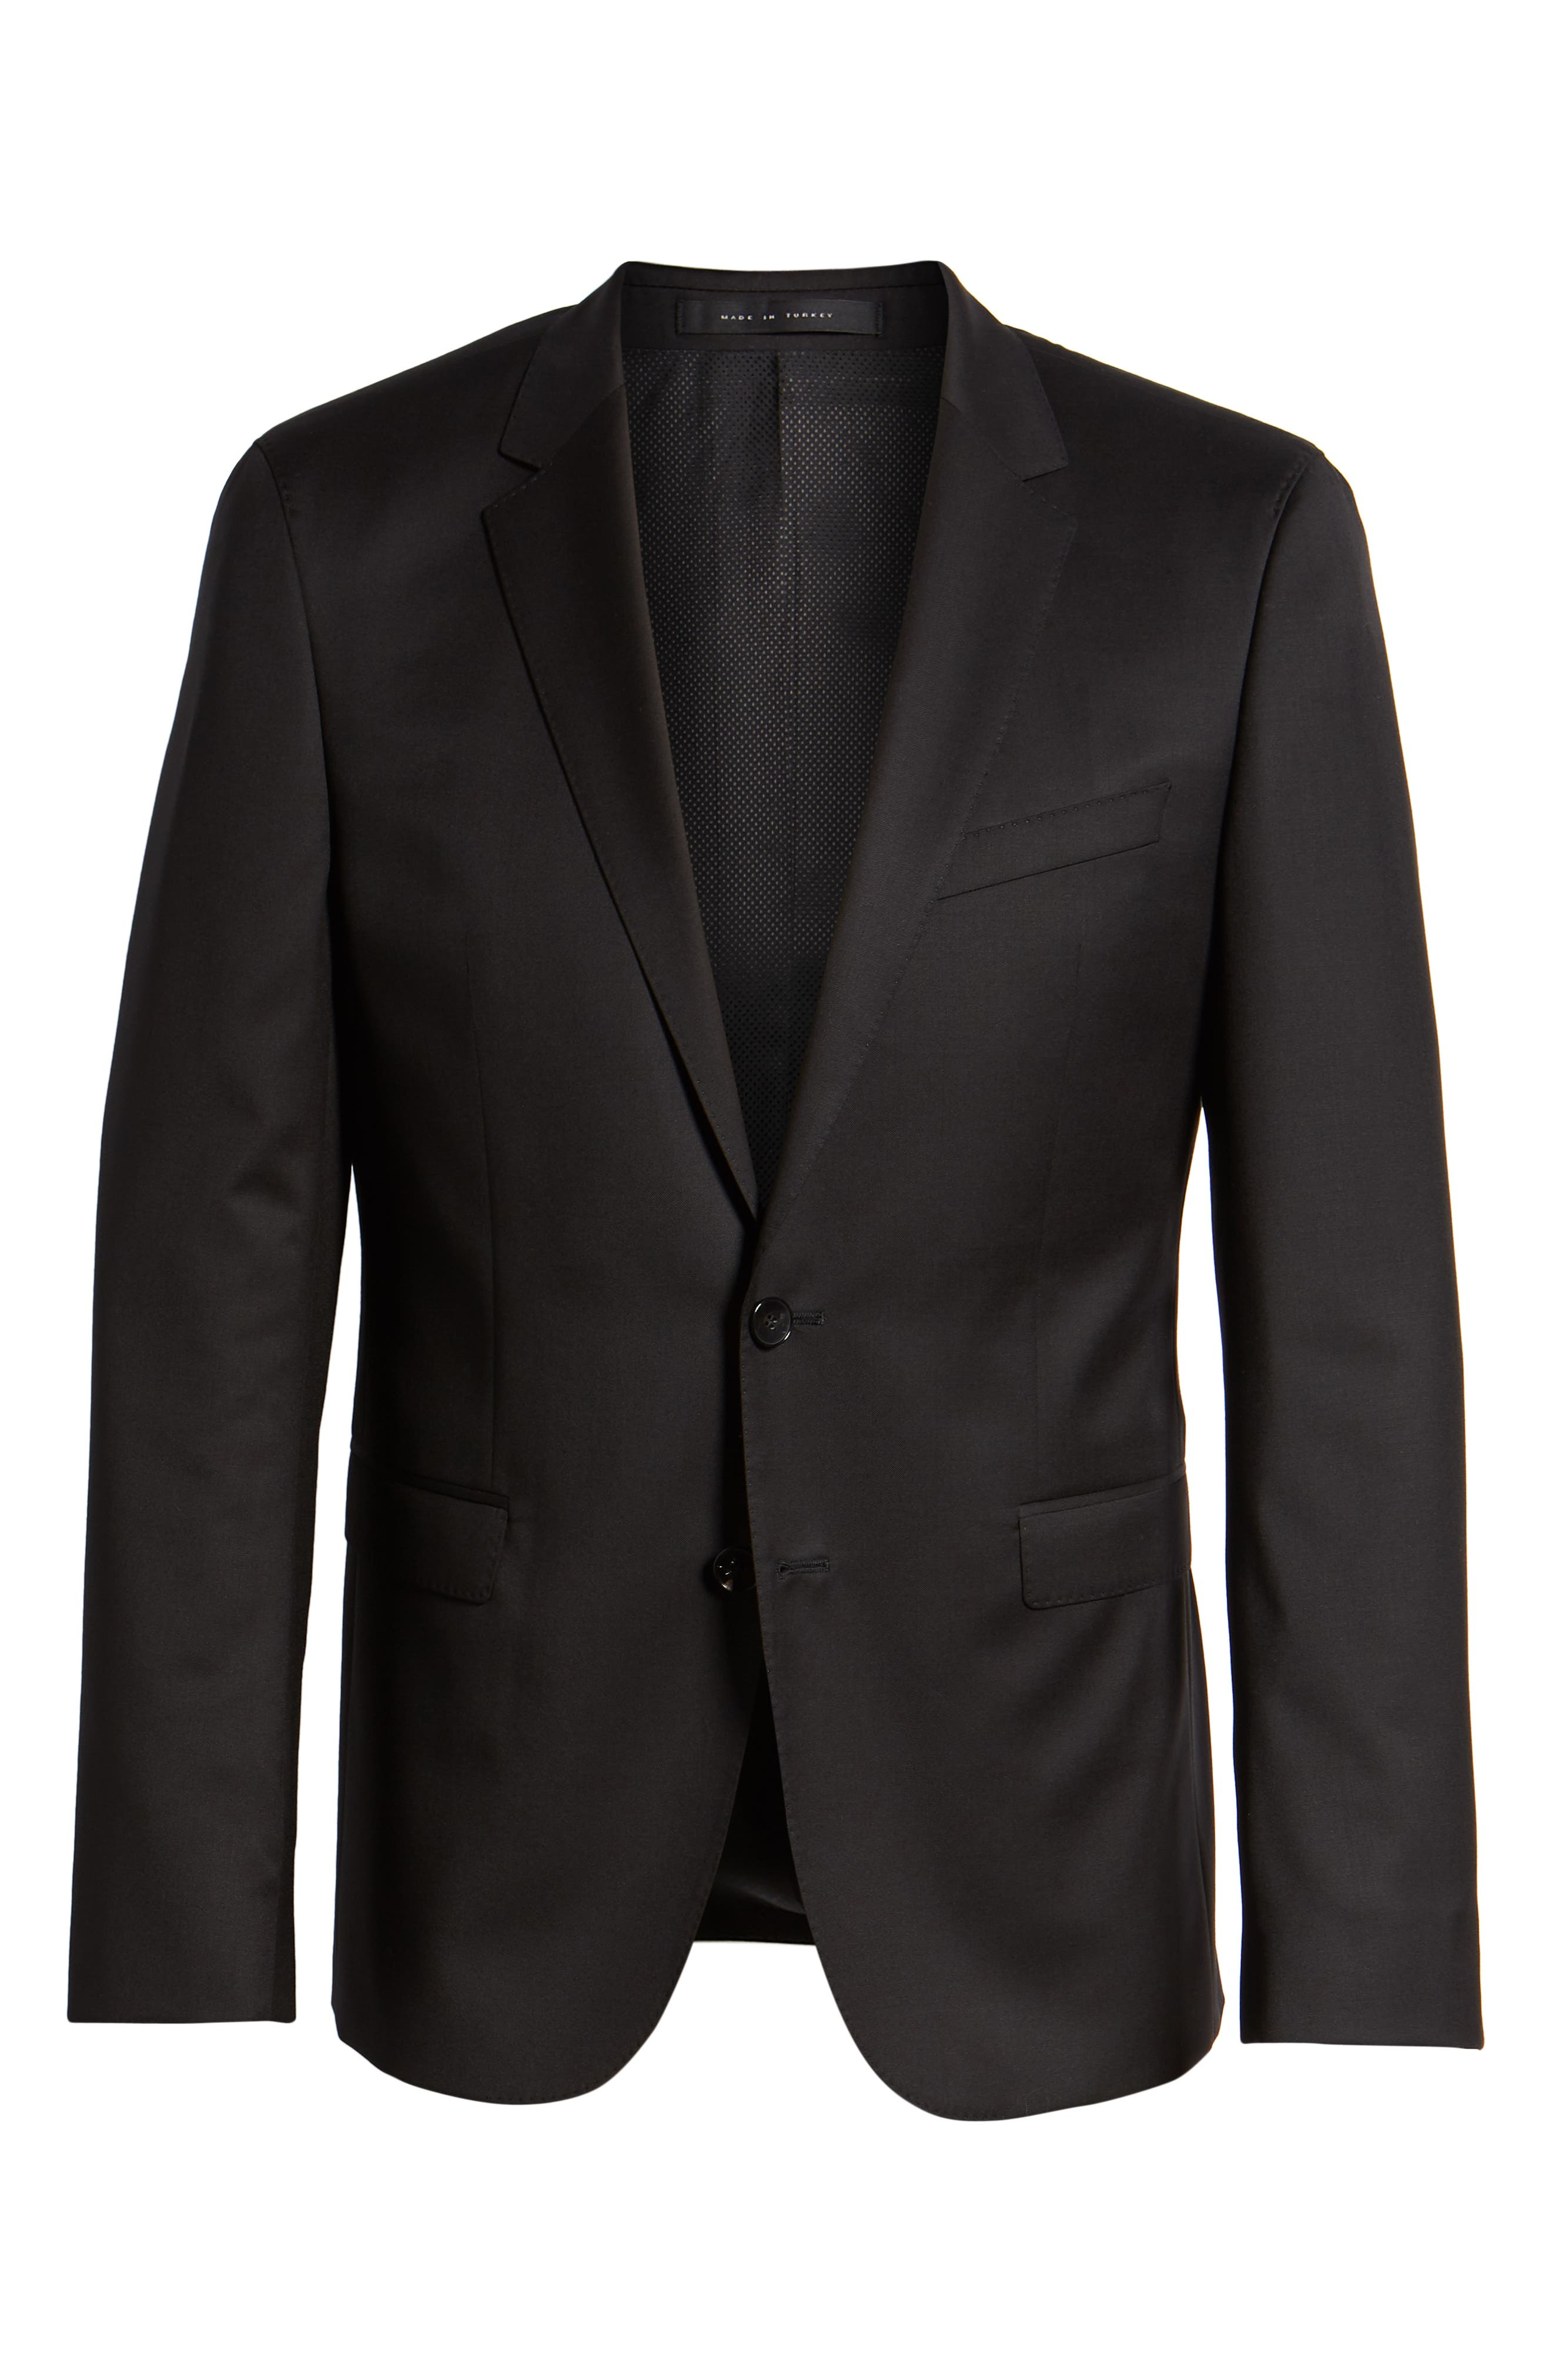 Ryan CYL Extra Trim Fit Solid Wool Sport Coat,                             Alternate thumbnail 5, color,                             BLACK